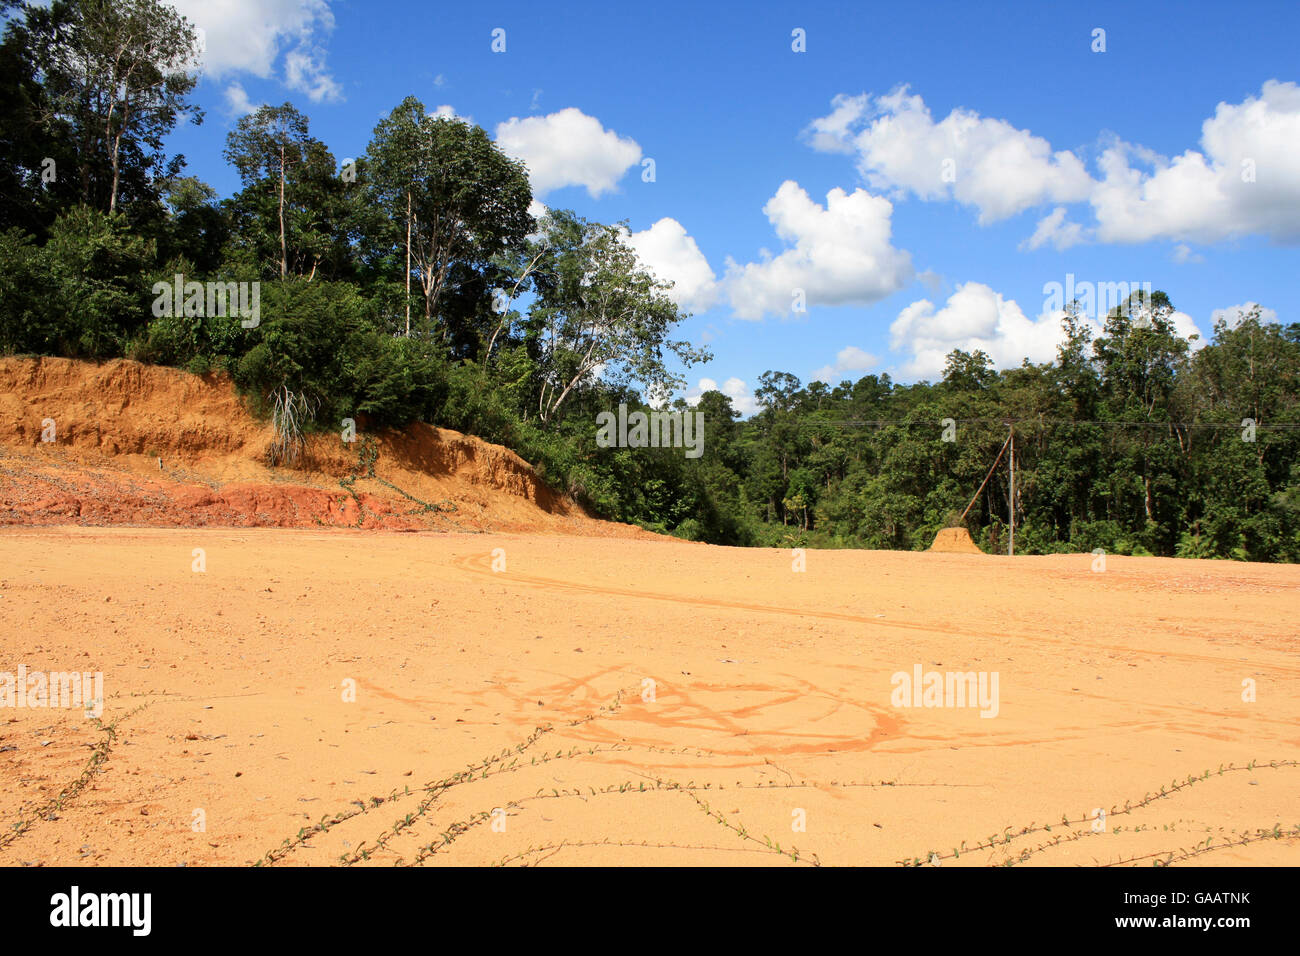 Loss of topsoil in deforested land, Central Kalimantan, Indonesian Borneo. June 2010. - Stock Image